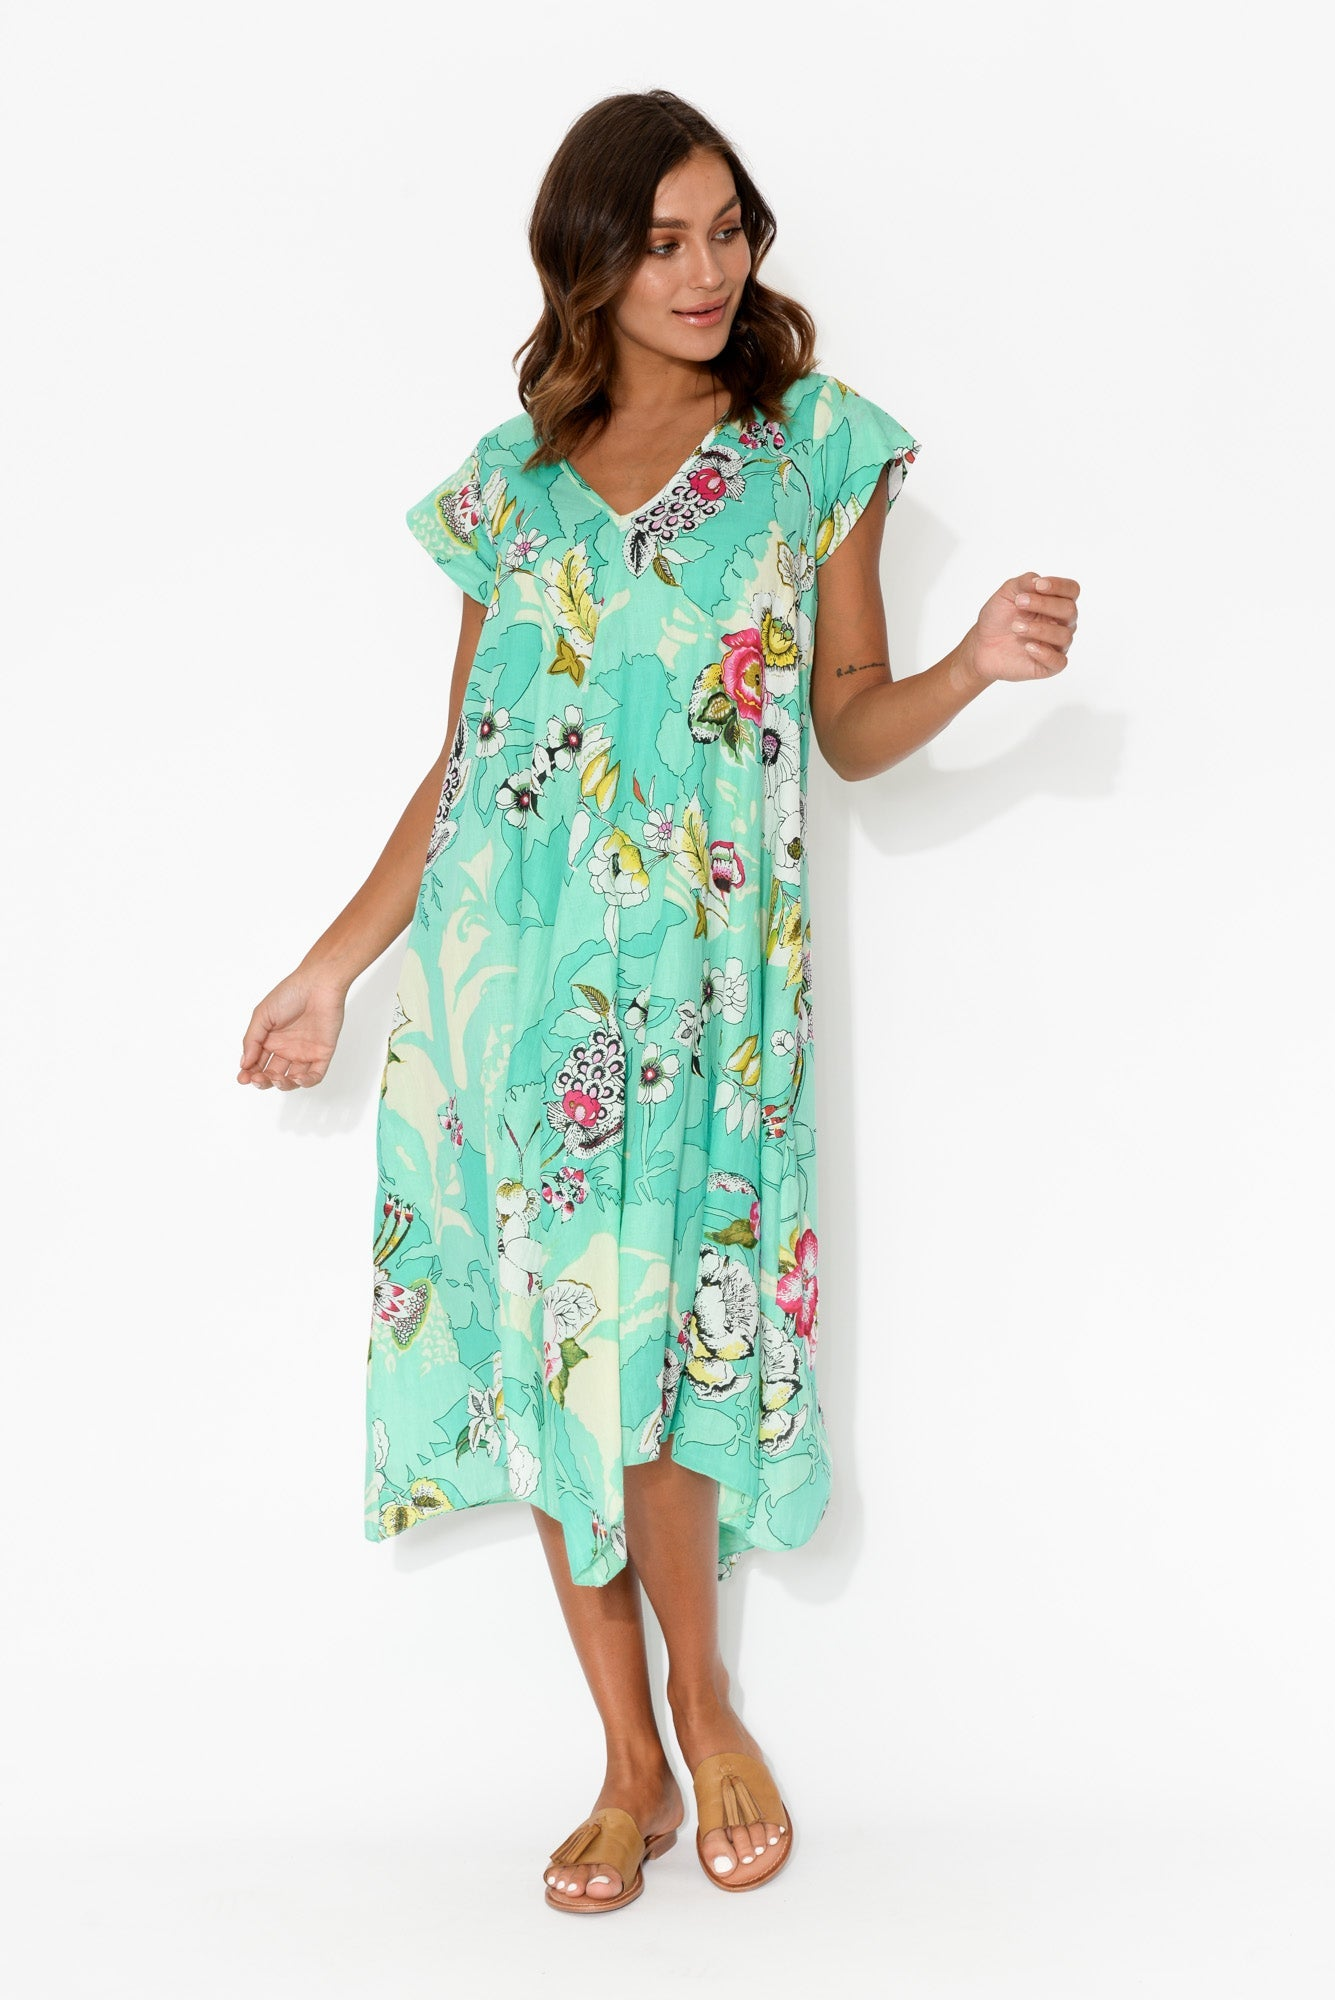 Maheno Aqua Garden Cotton Midi Dress